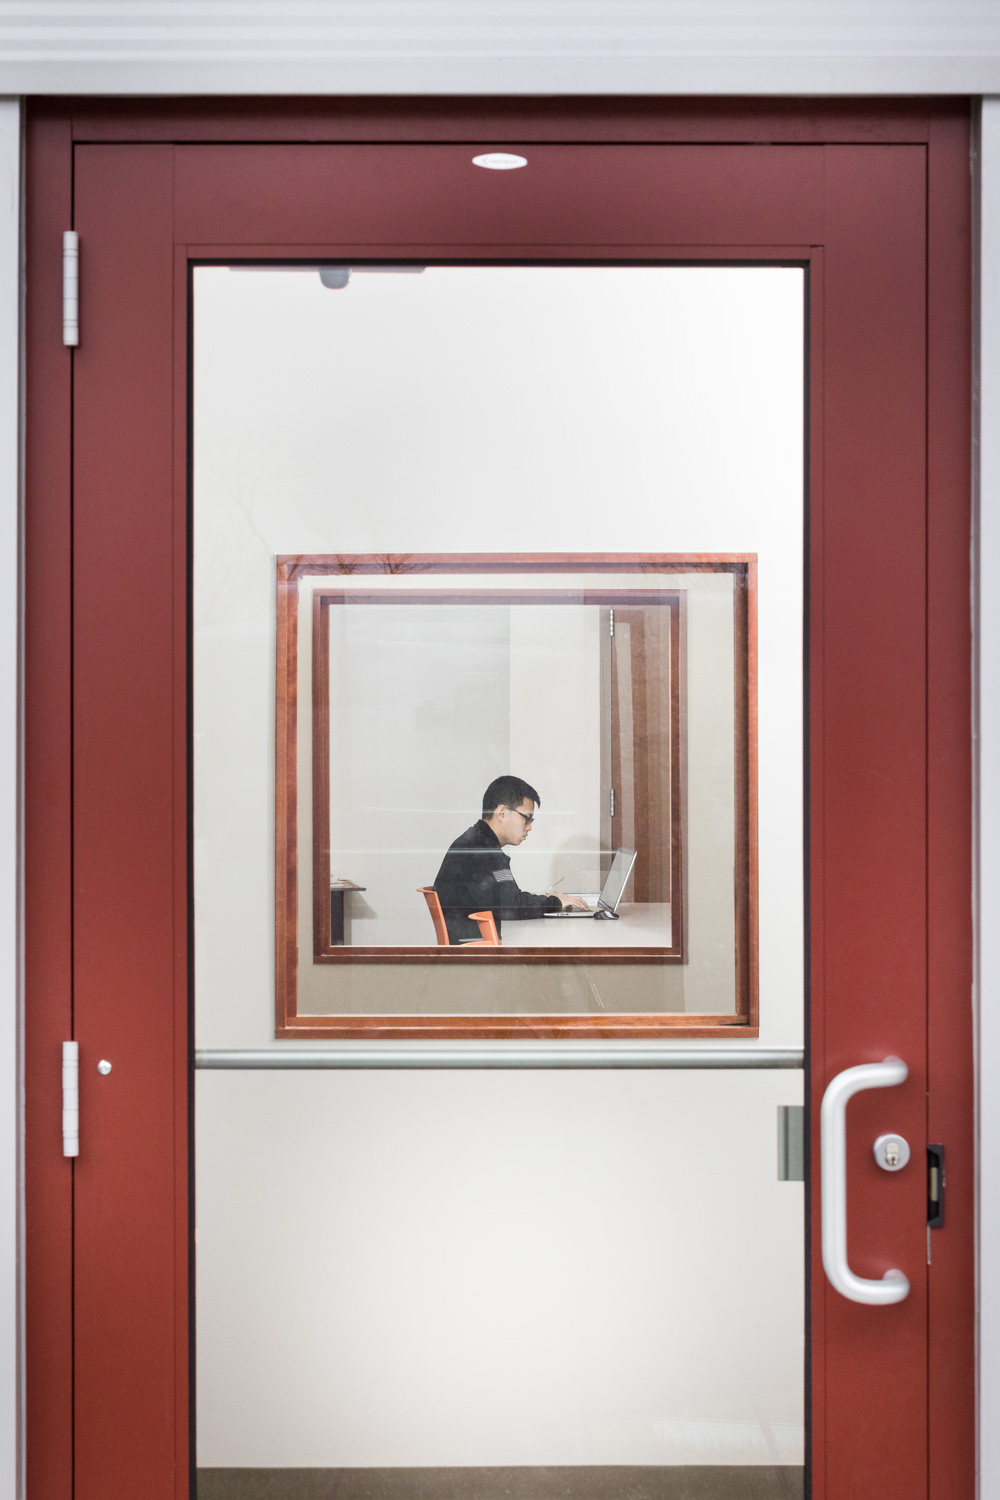 A view through an exterior glass door and aligned interior windows into the provider conference room in the UVM Rescue building in Burlington VT by Vermont professional photographer Stina Booth